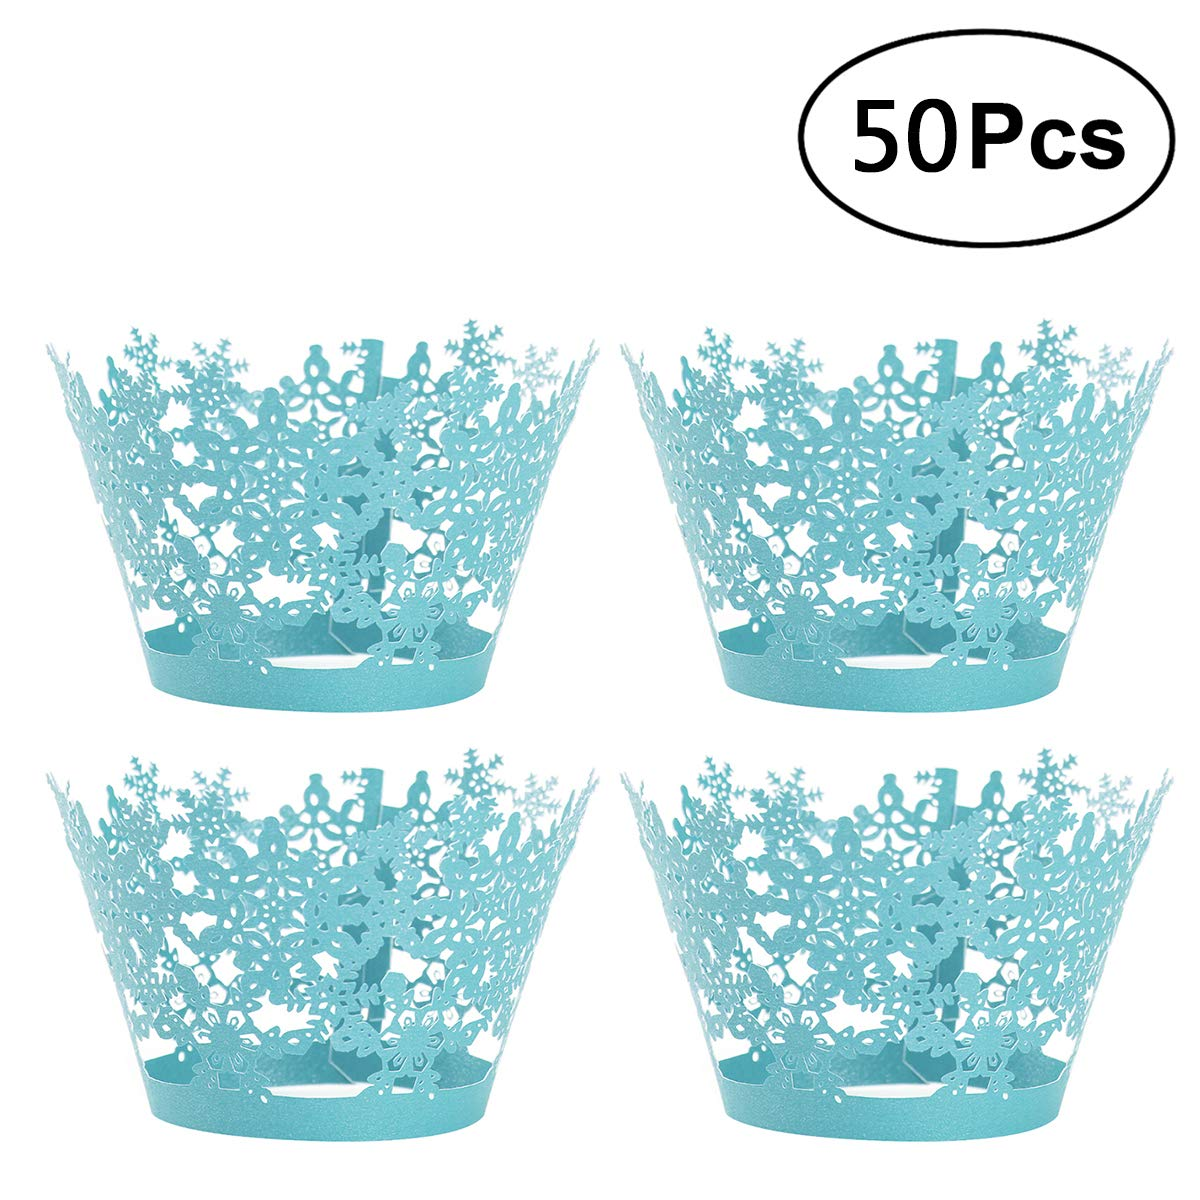 SUPVOX 50pcs Artistic Hollow Out Cupcake Wrappers Lace Liner Baking Cup Muffin Holder Case for Wedding/Birthday Decoration (Sky Blue)